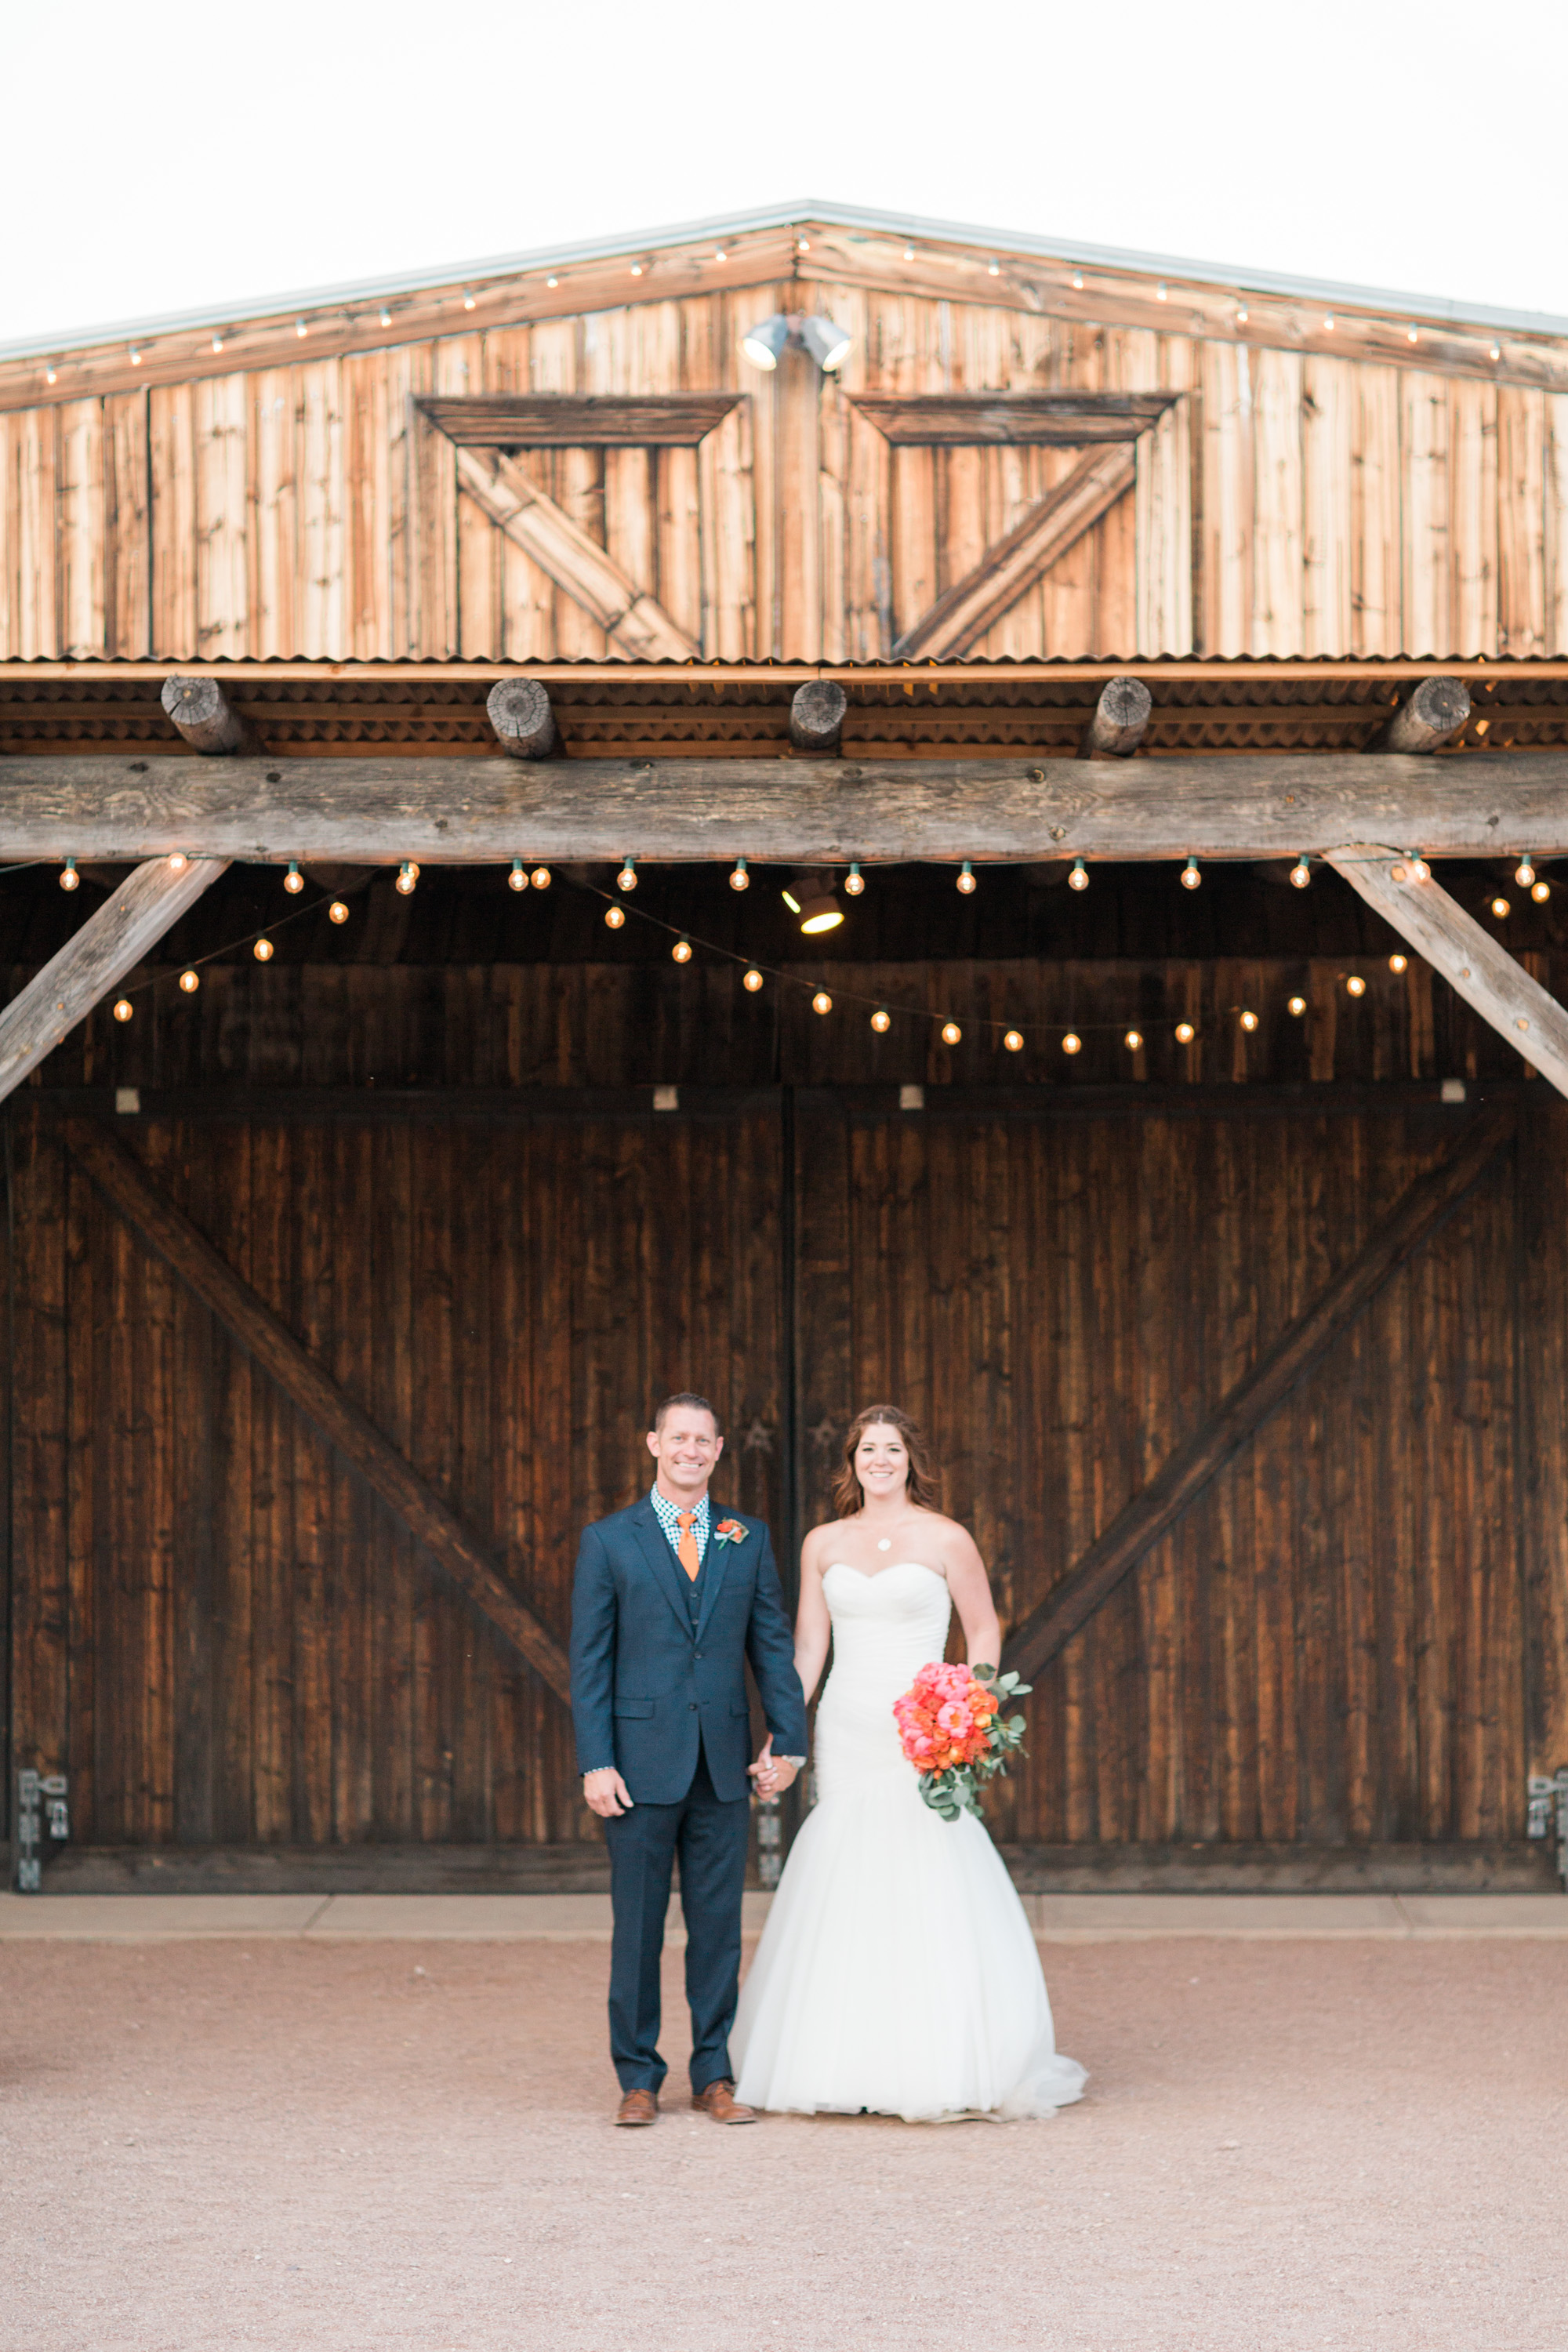 Bride and groom standing in front of the barn doors at Stardance in Tucson.